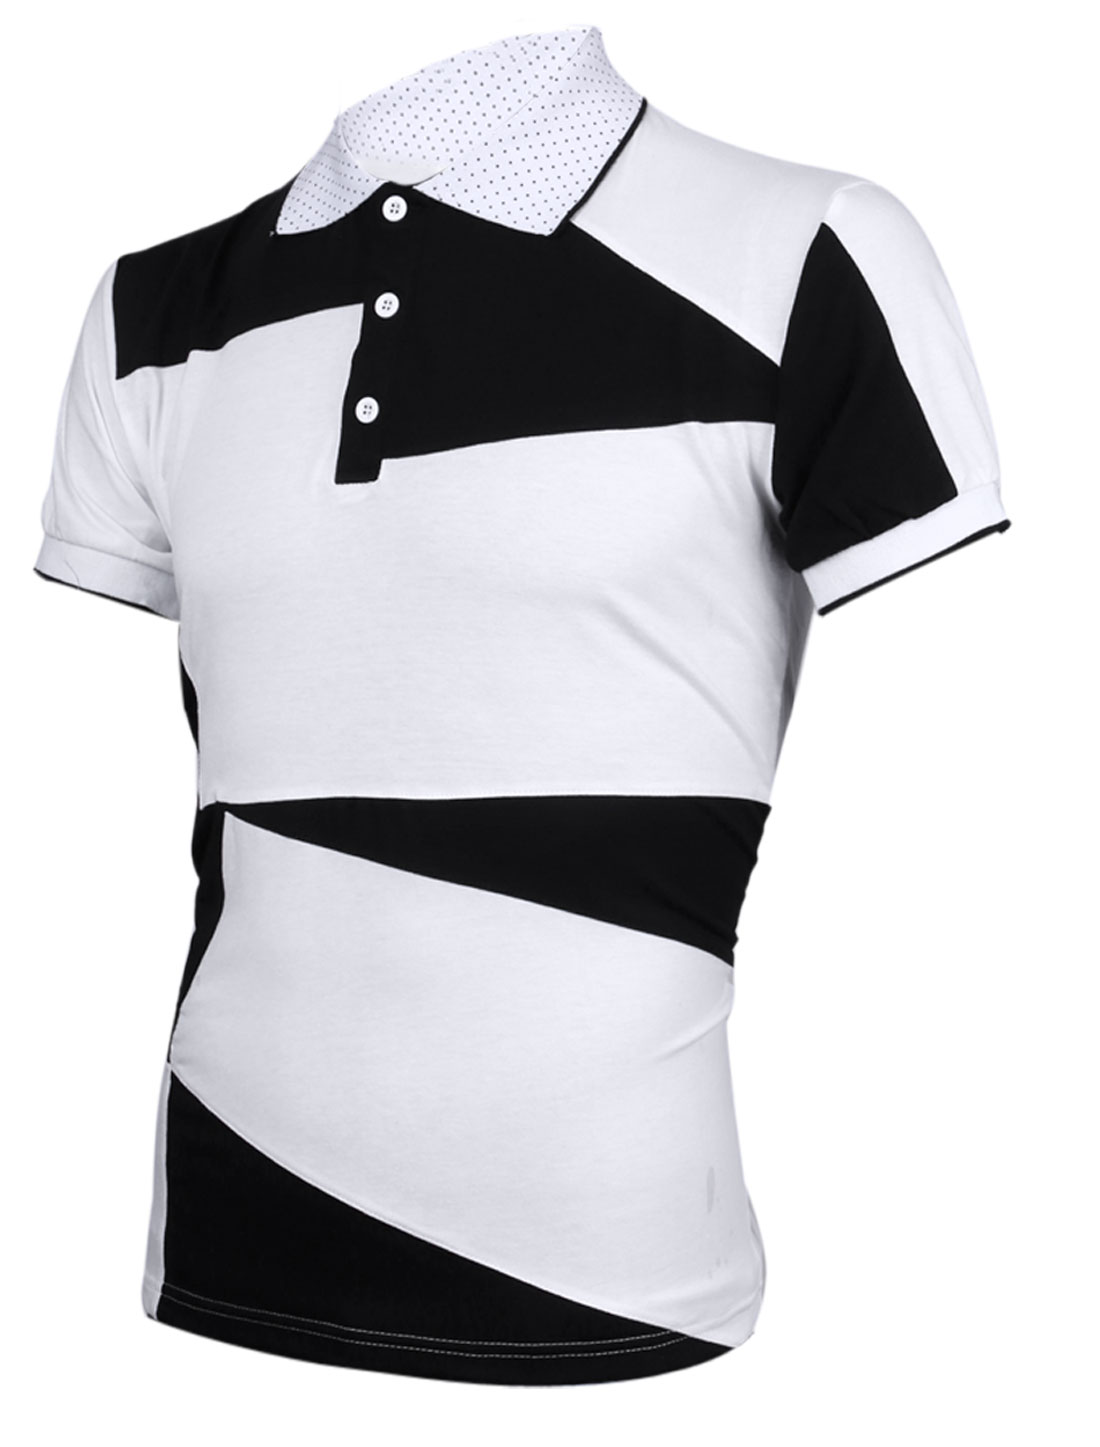 Mens Newly Short Sleeve Contrast Color Splice Summer White Polo Shirt M